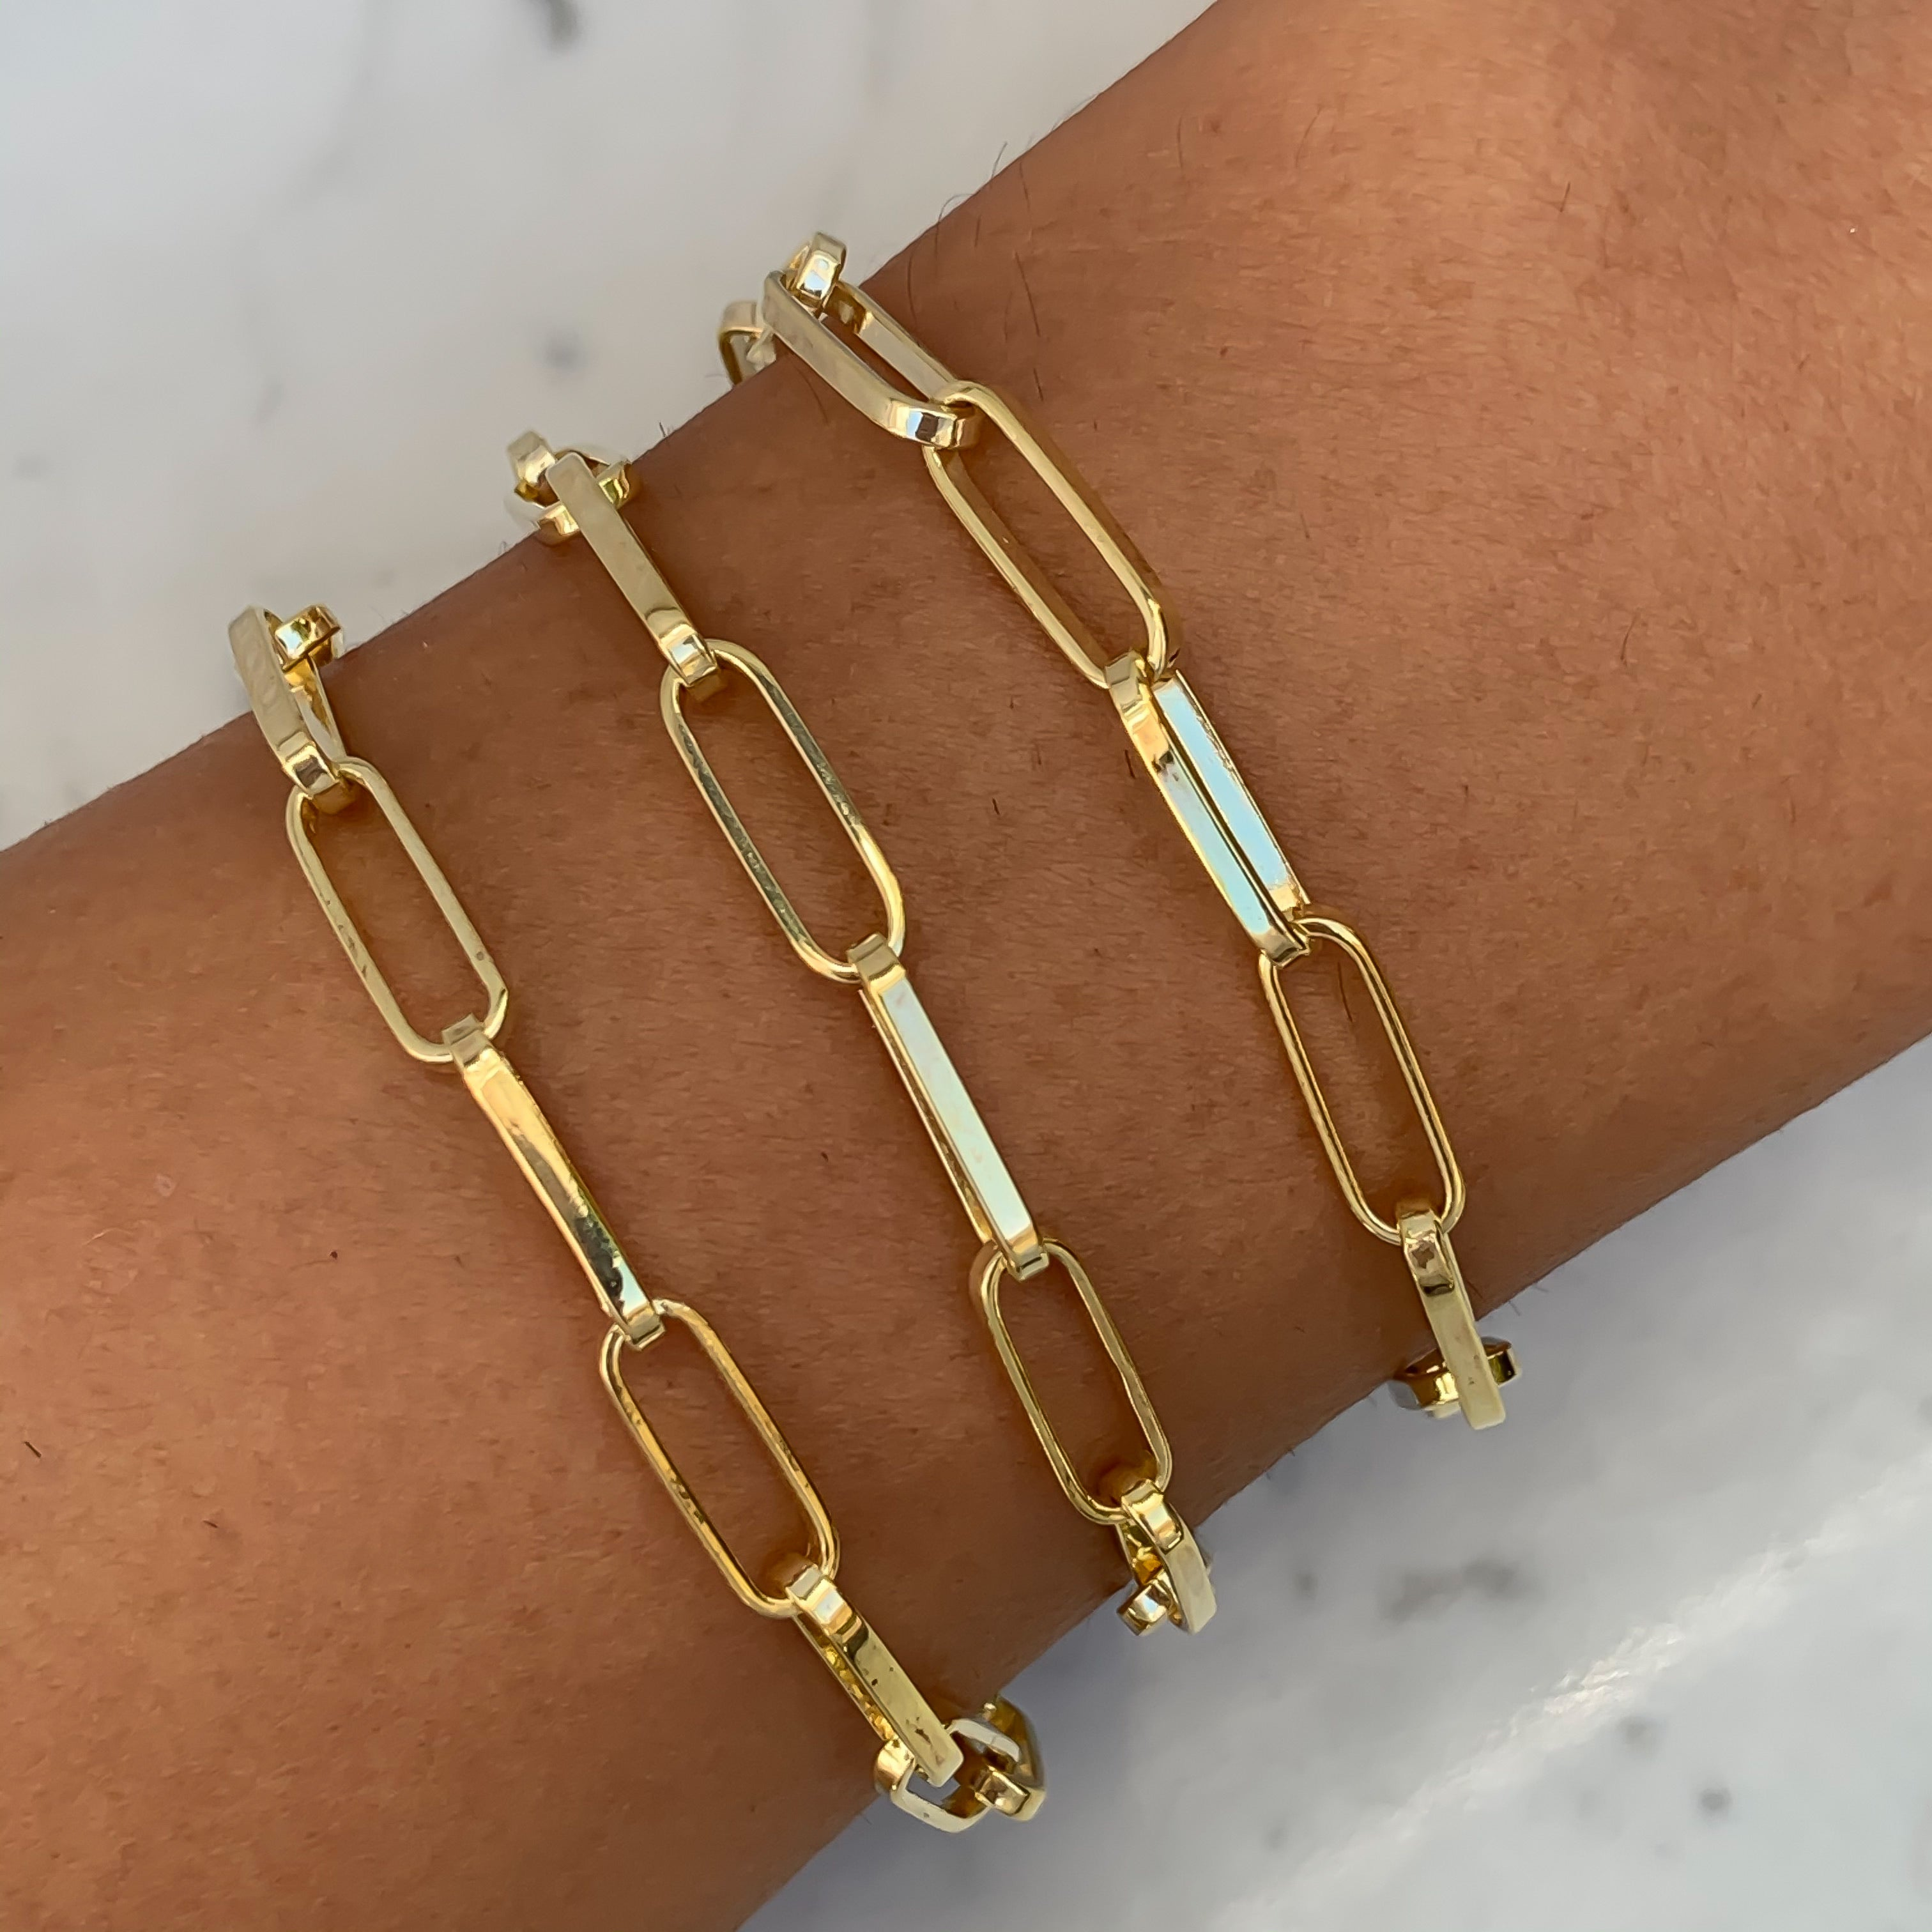 Silver gold plated paperclip chain bracelet